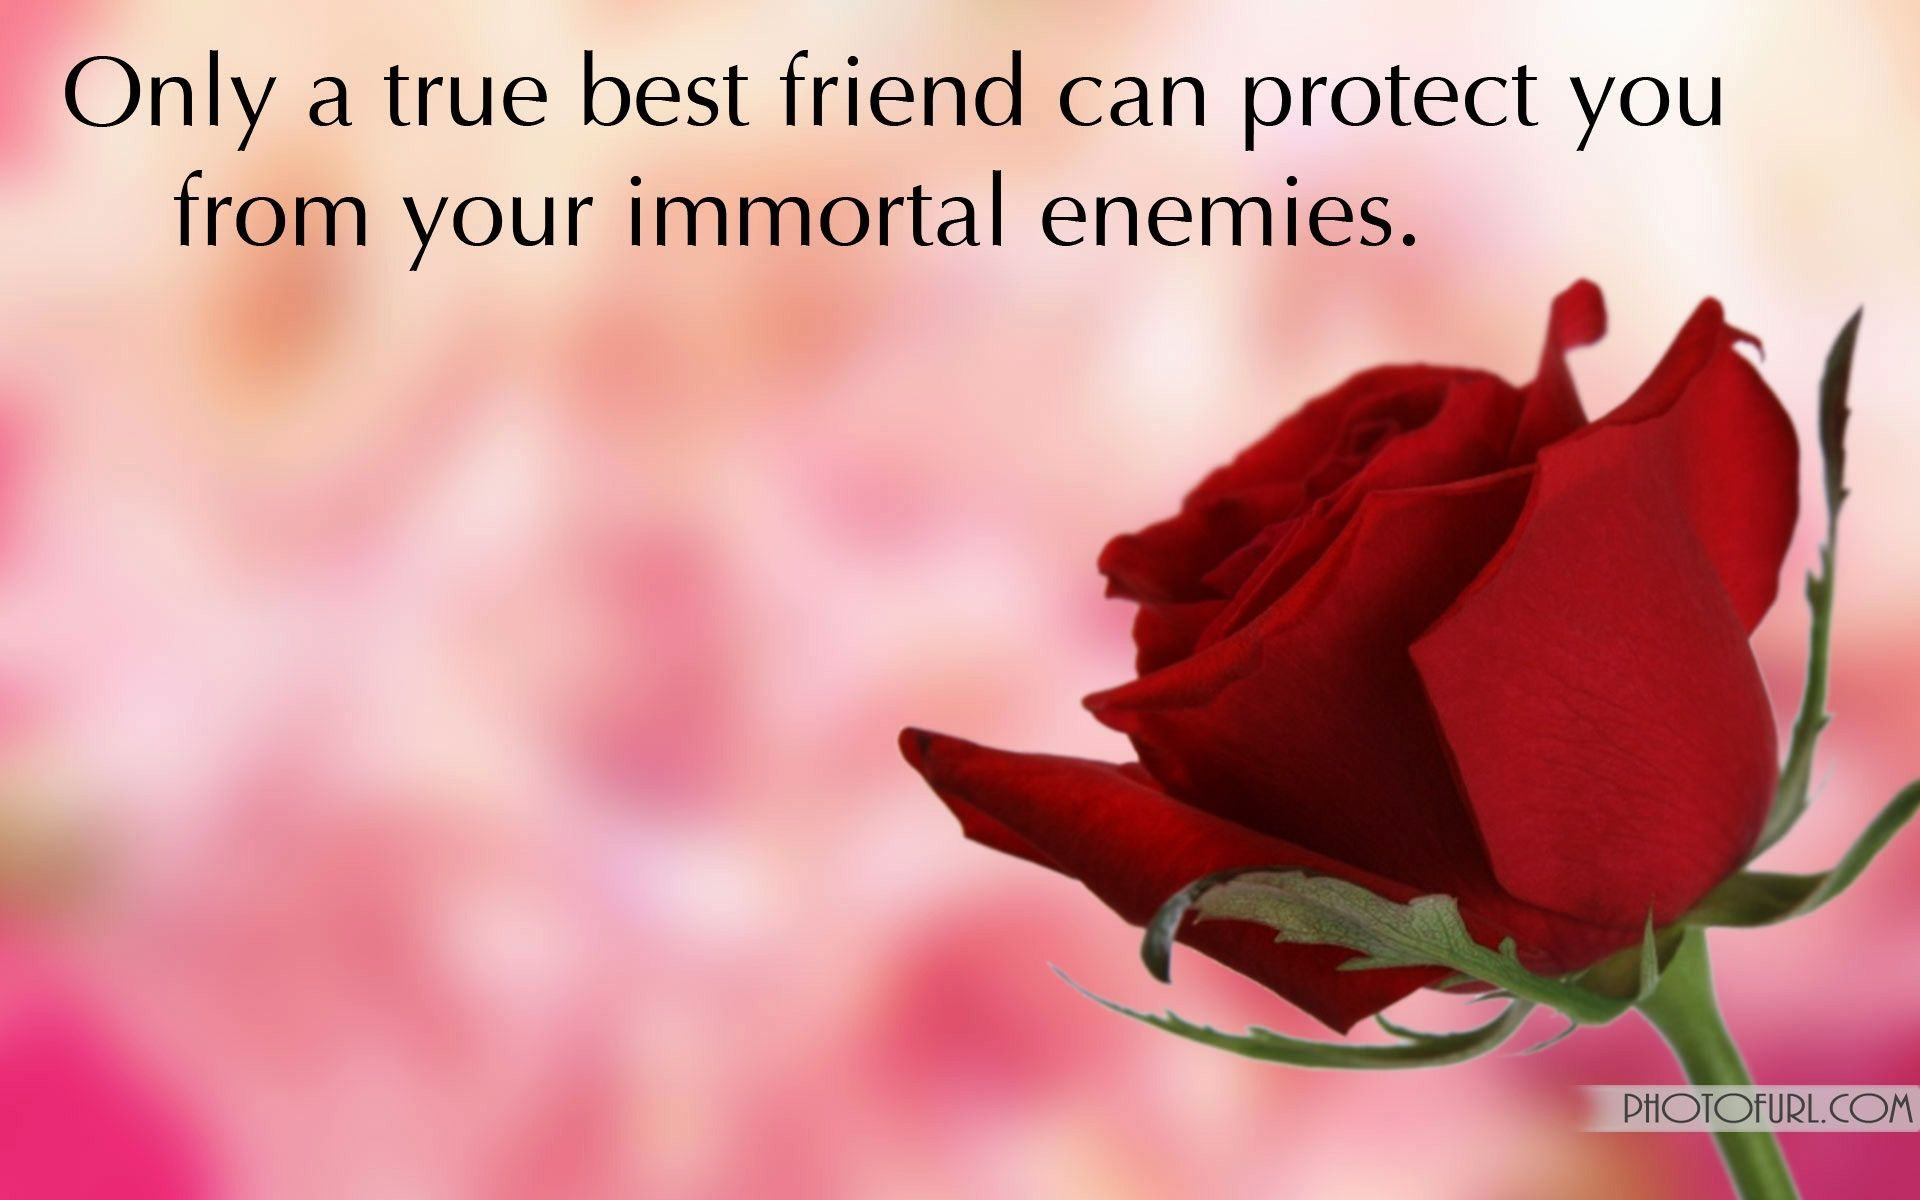 New images of love n friendship Friendship Wallpapers With Quotes Free Wallpapers pertaining to